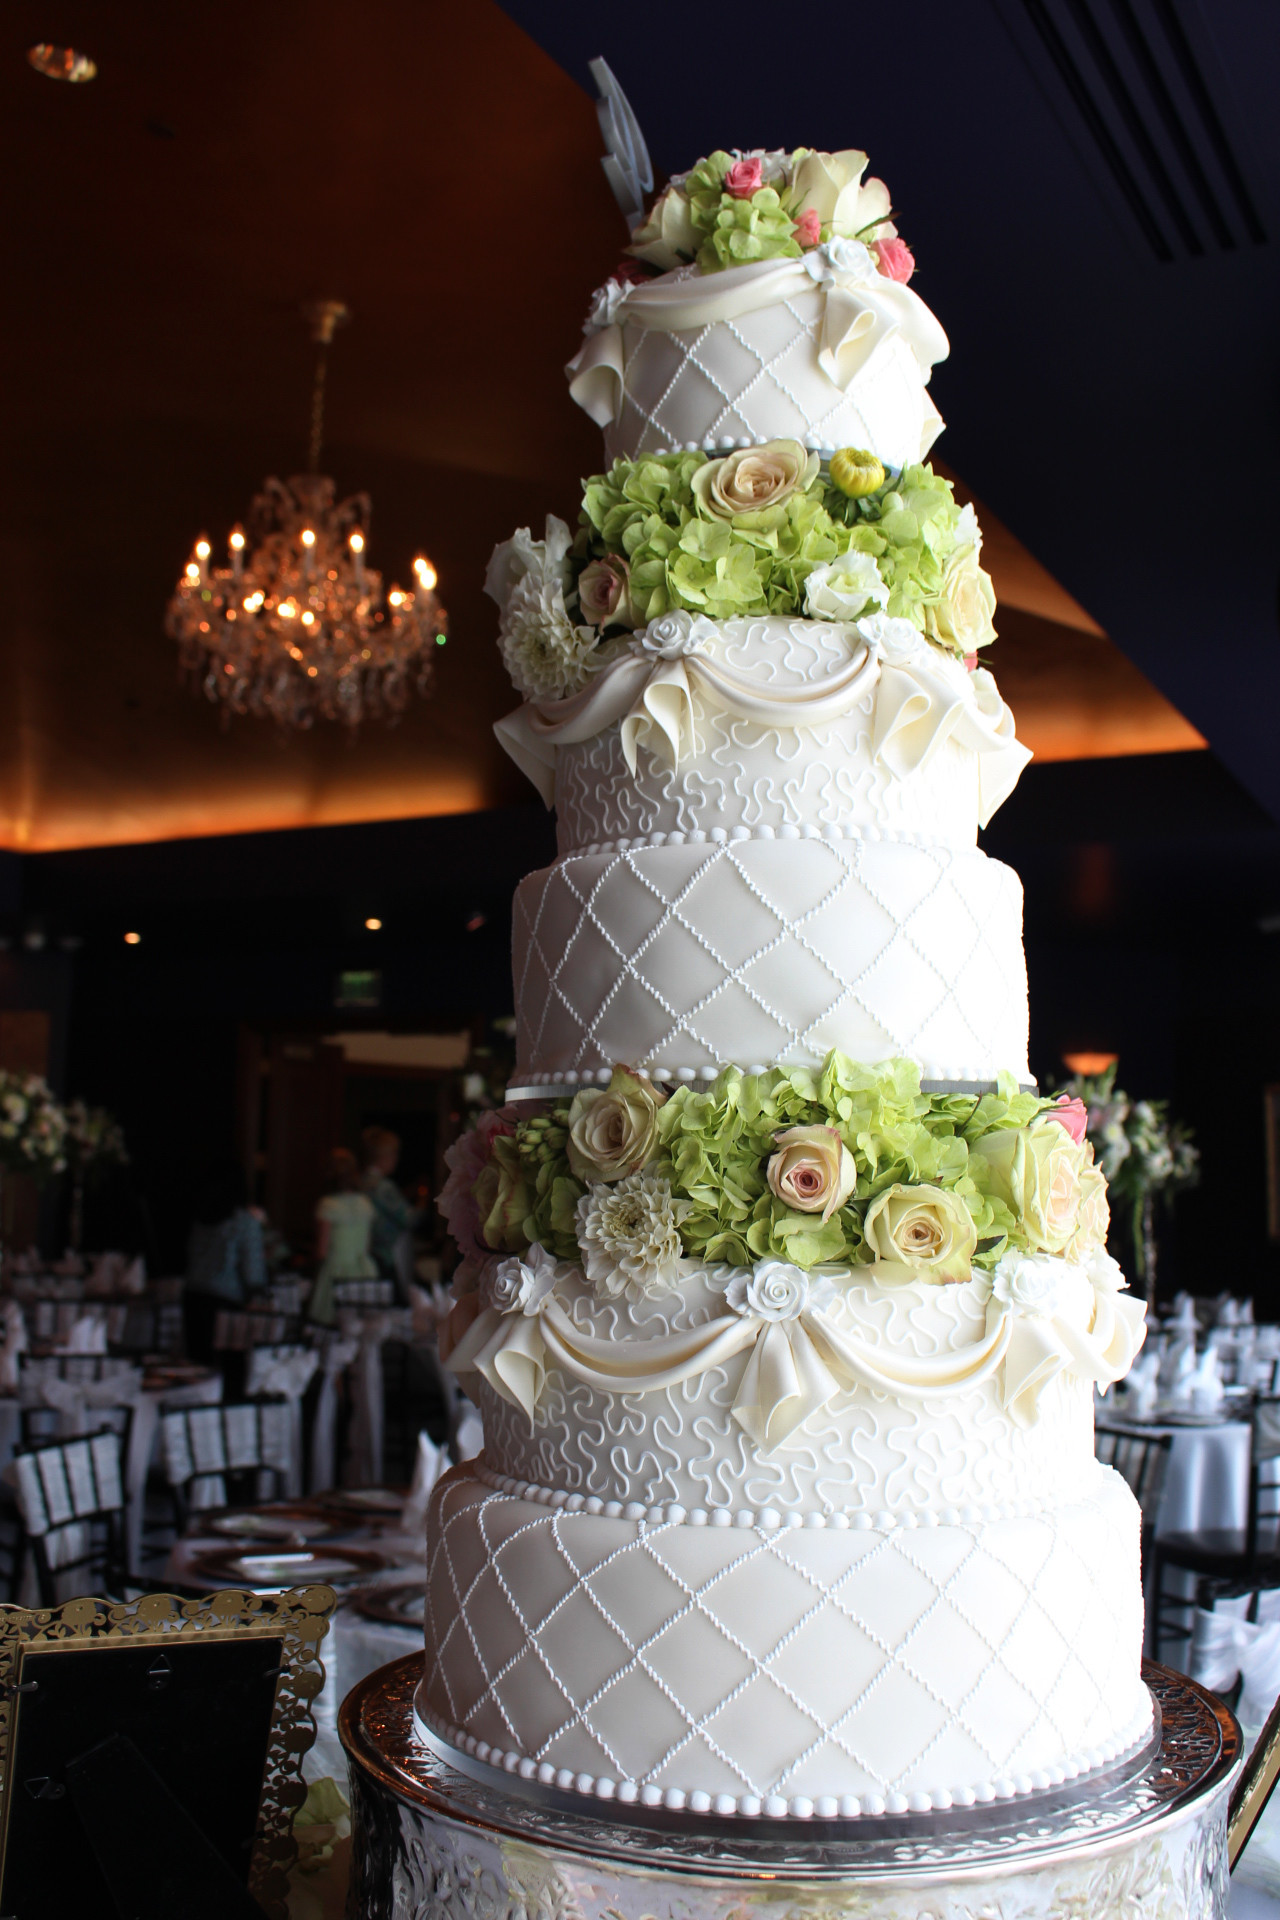 Wedding Tiered Cakes  Best Ways to Use Fresh Flowers on your Wedding Cake